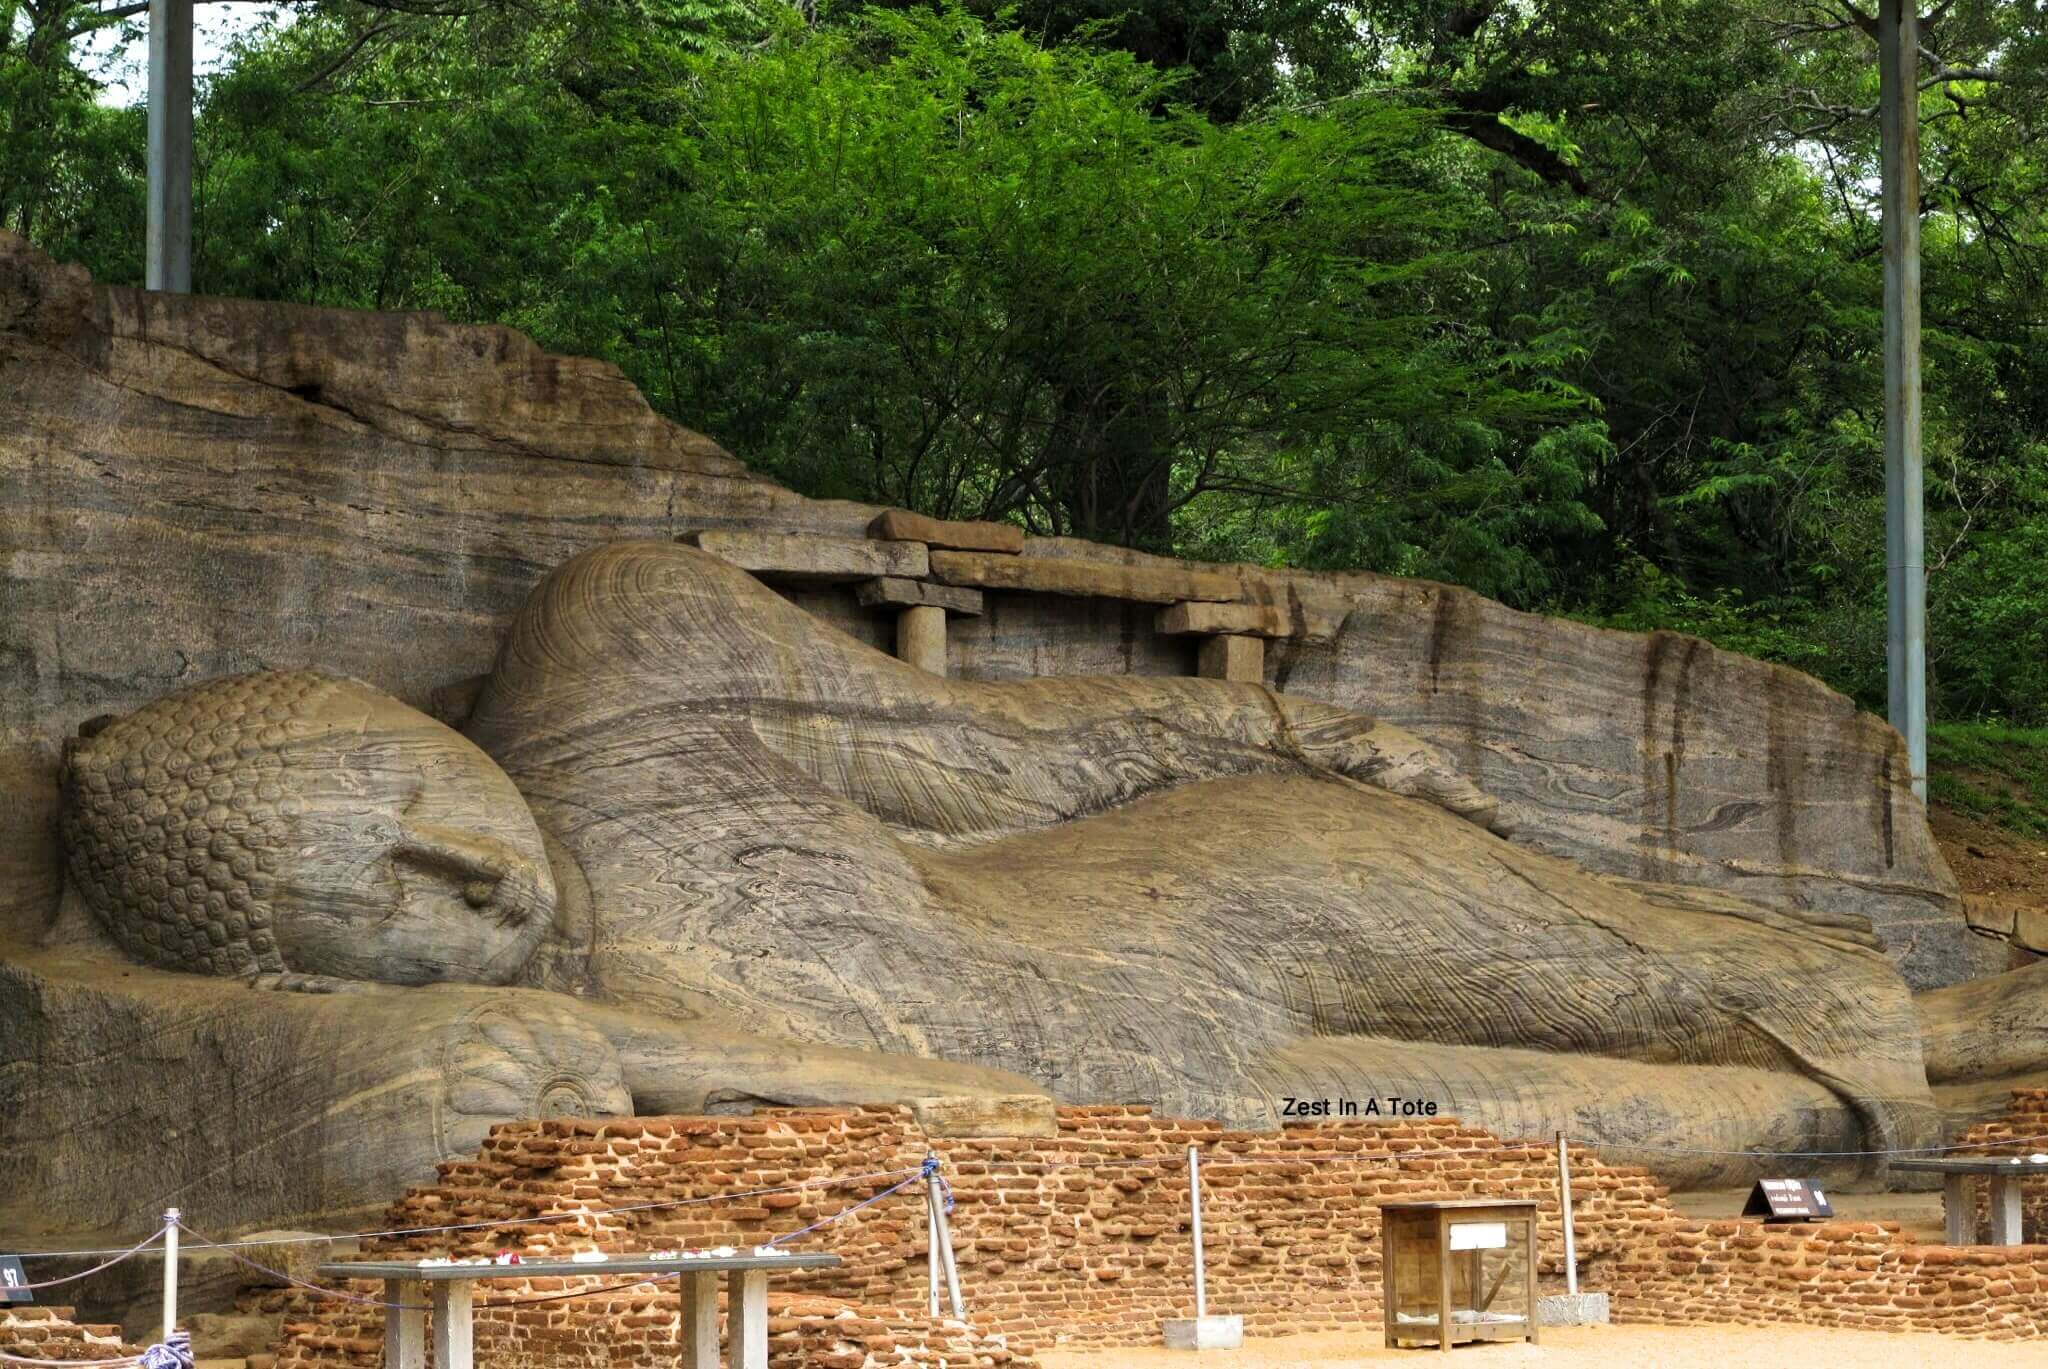 Sri Lanka: Top places to visit in the Pearl of the Ocean